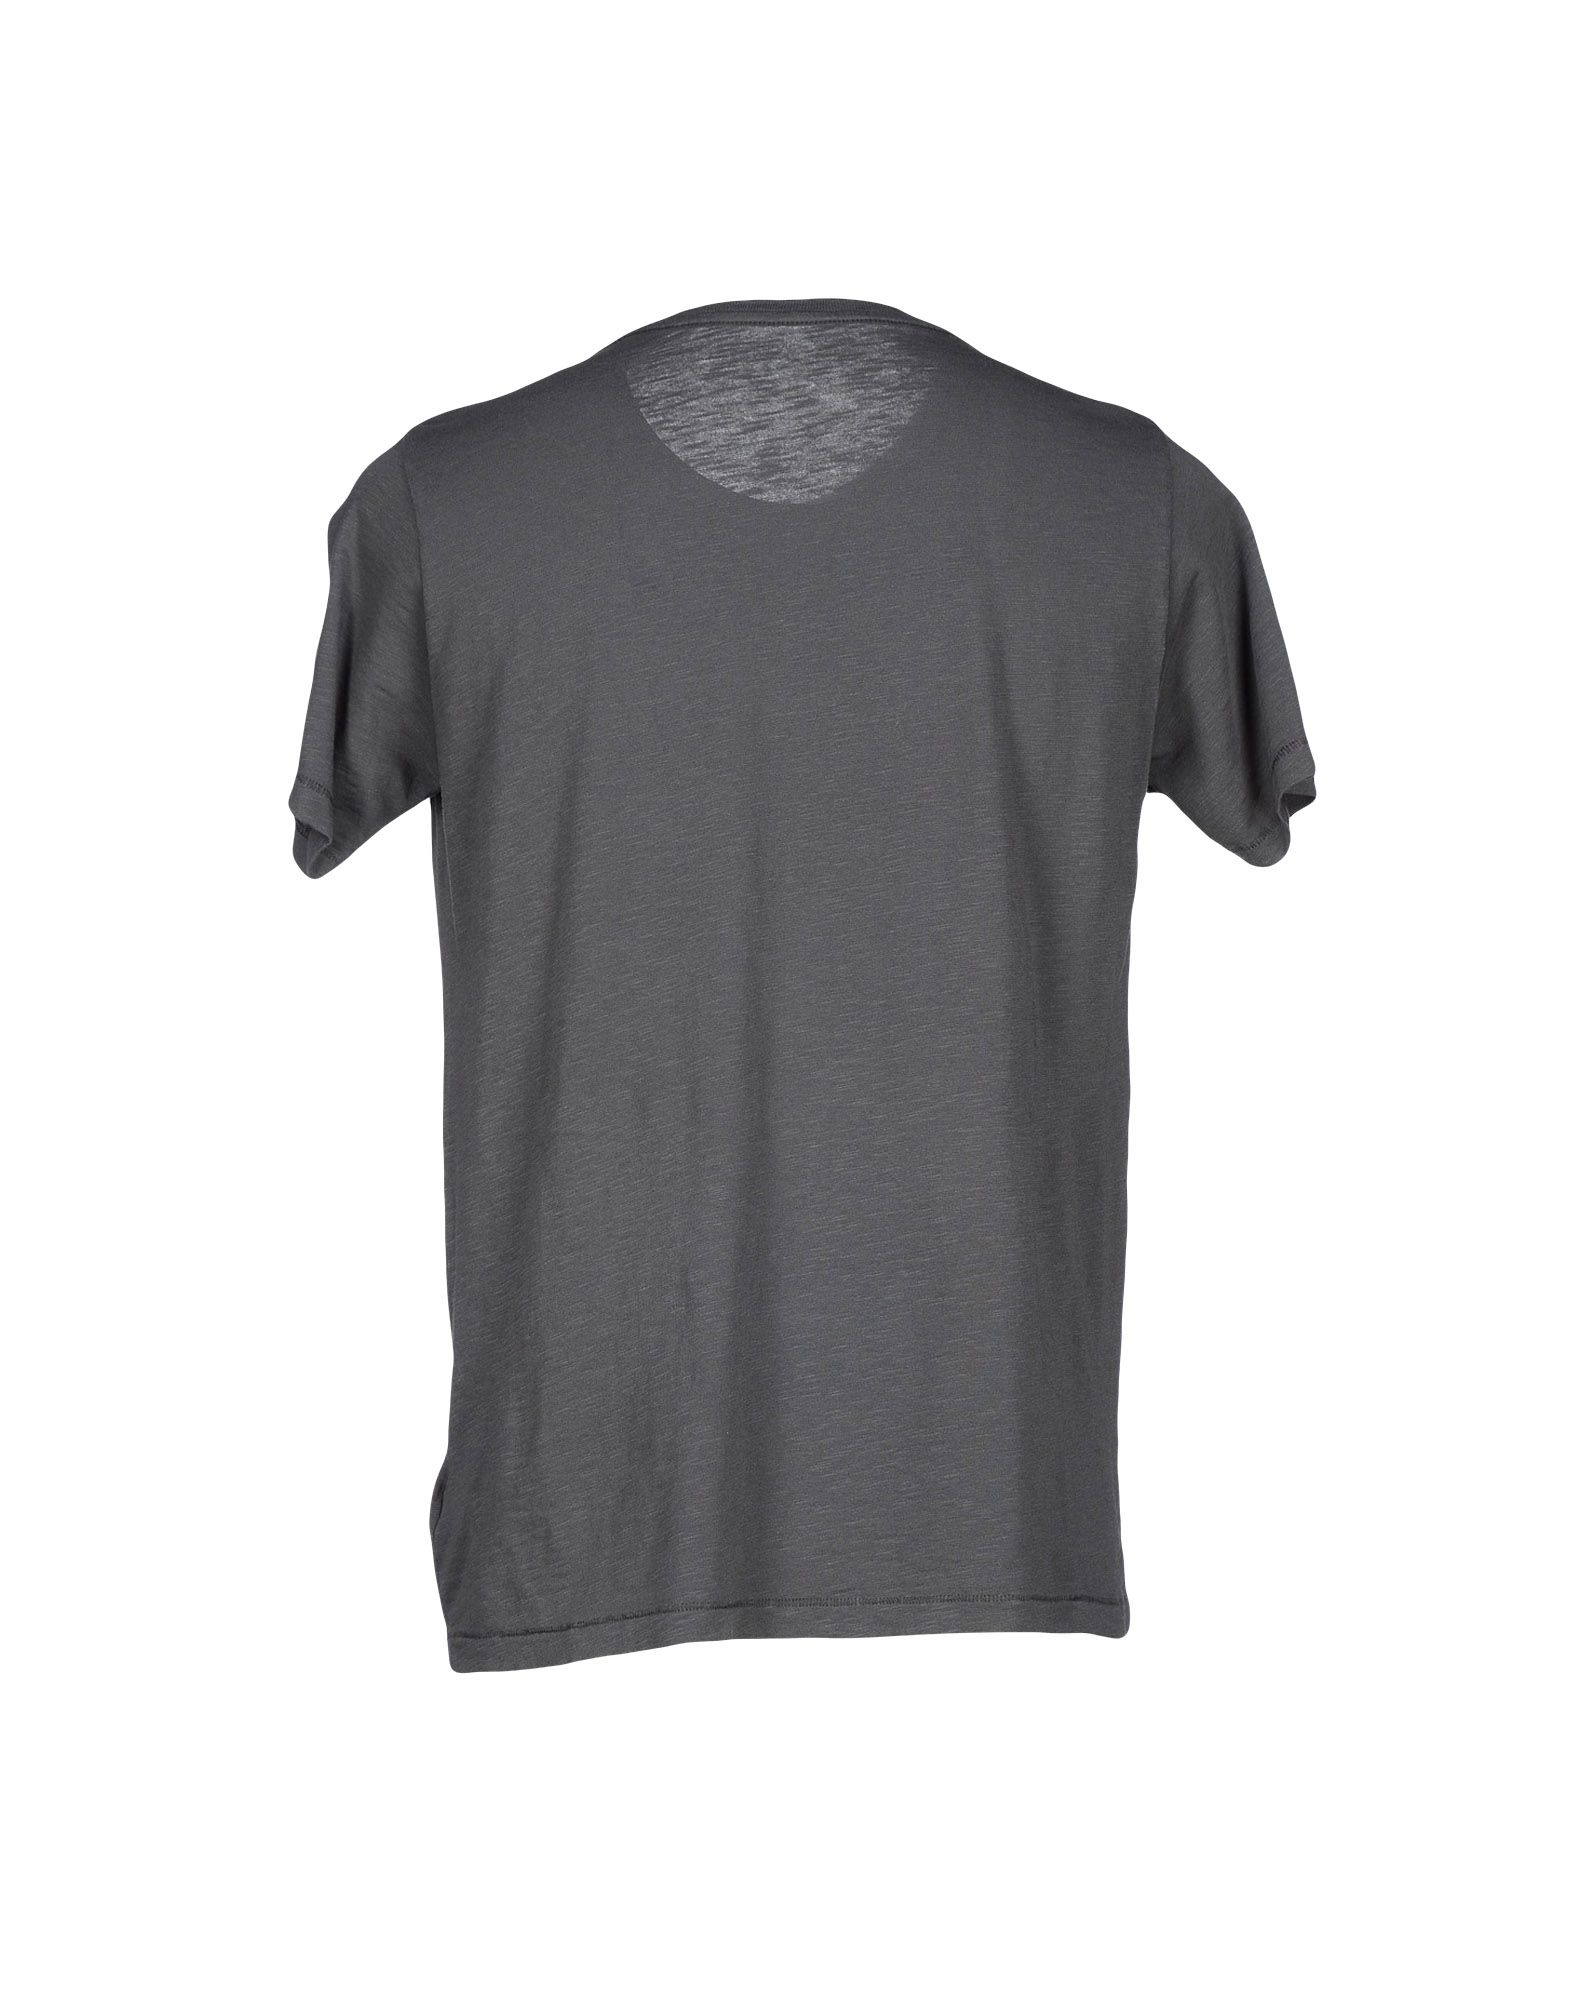 Hartford t shirt in gray for men lyst for T shirt printing hartford ct